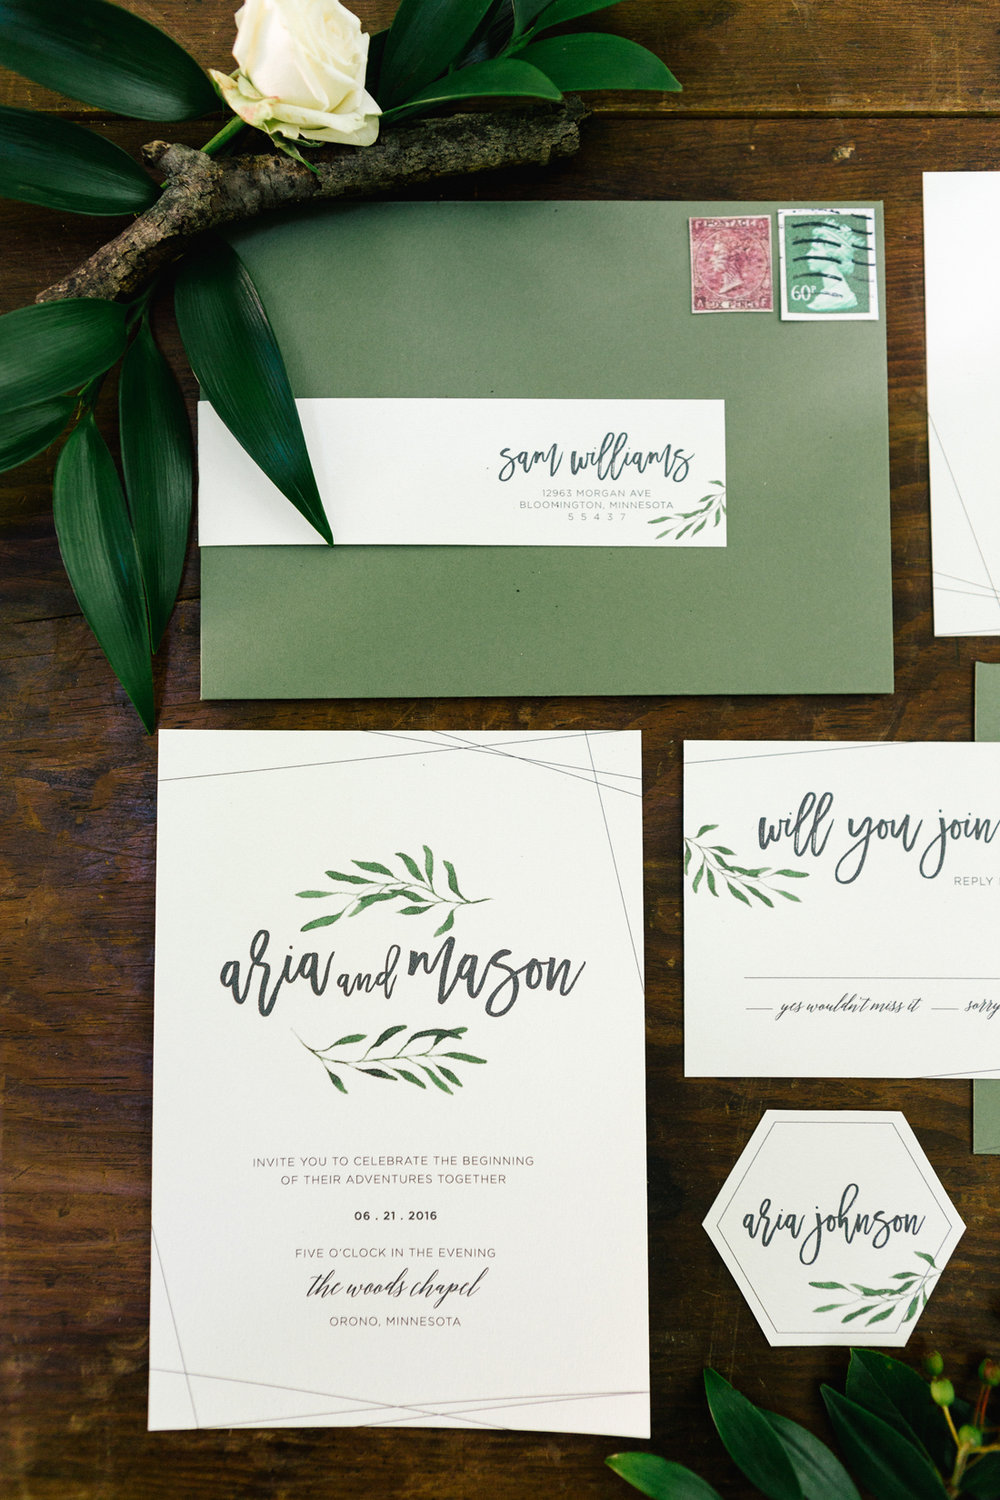 Allison Hopperstad Photography, Allison Hopperstsd Design, www.allisonhopperstad.com, Wedding Stationery, Wedding Stationery Designer, Custom Wedding Stationery, Invitation Designer, Wedding Invitations, Green Wedding Invitations, Woodland Wedding Invitations, The Woods Chapel wedding, Minnesota Wedding Stationery, Minnesota Summer Wedding